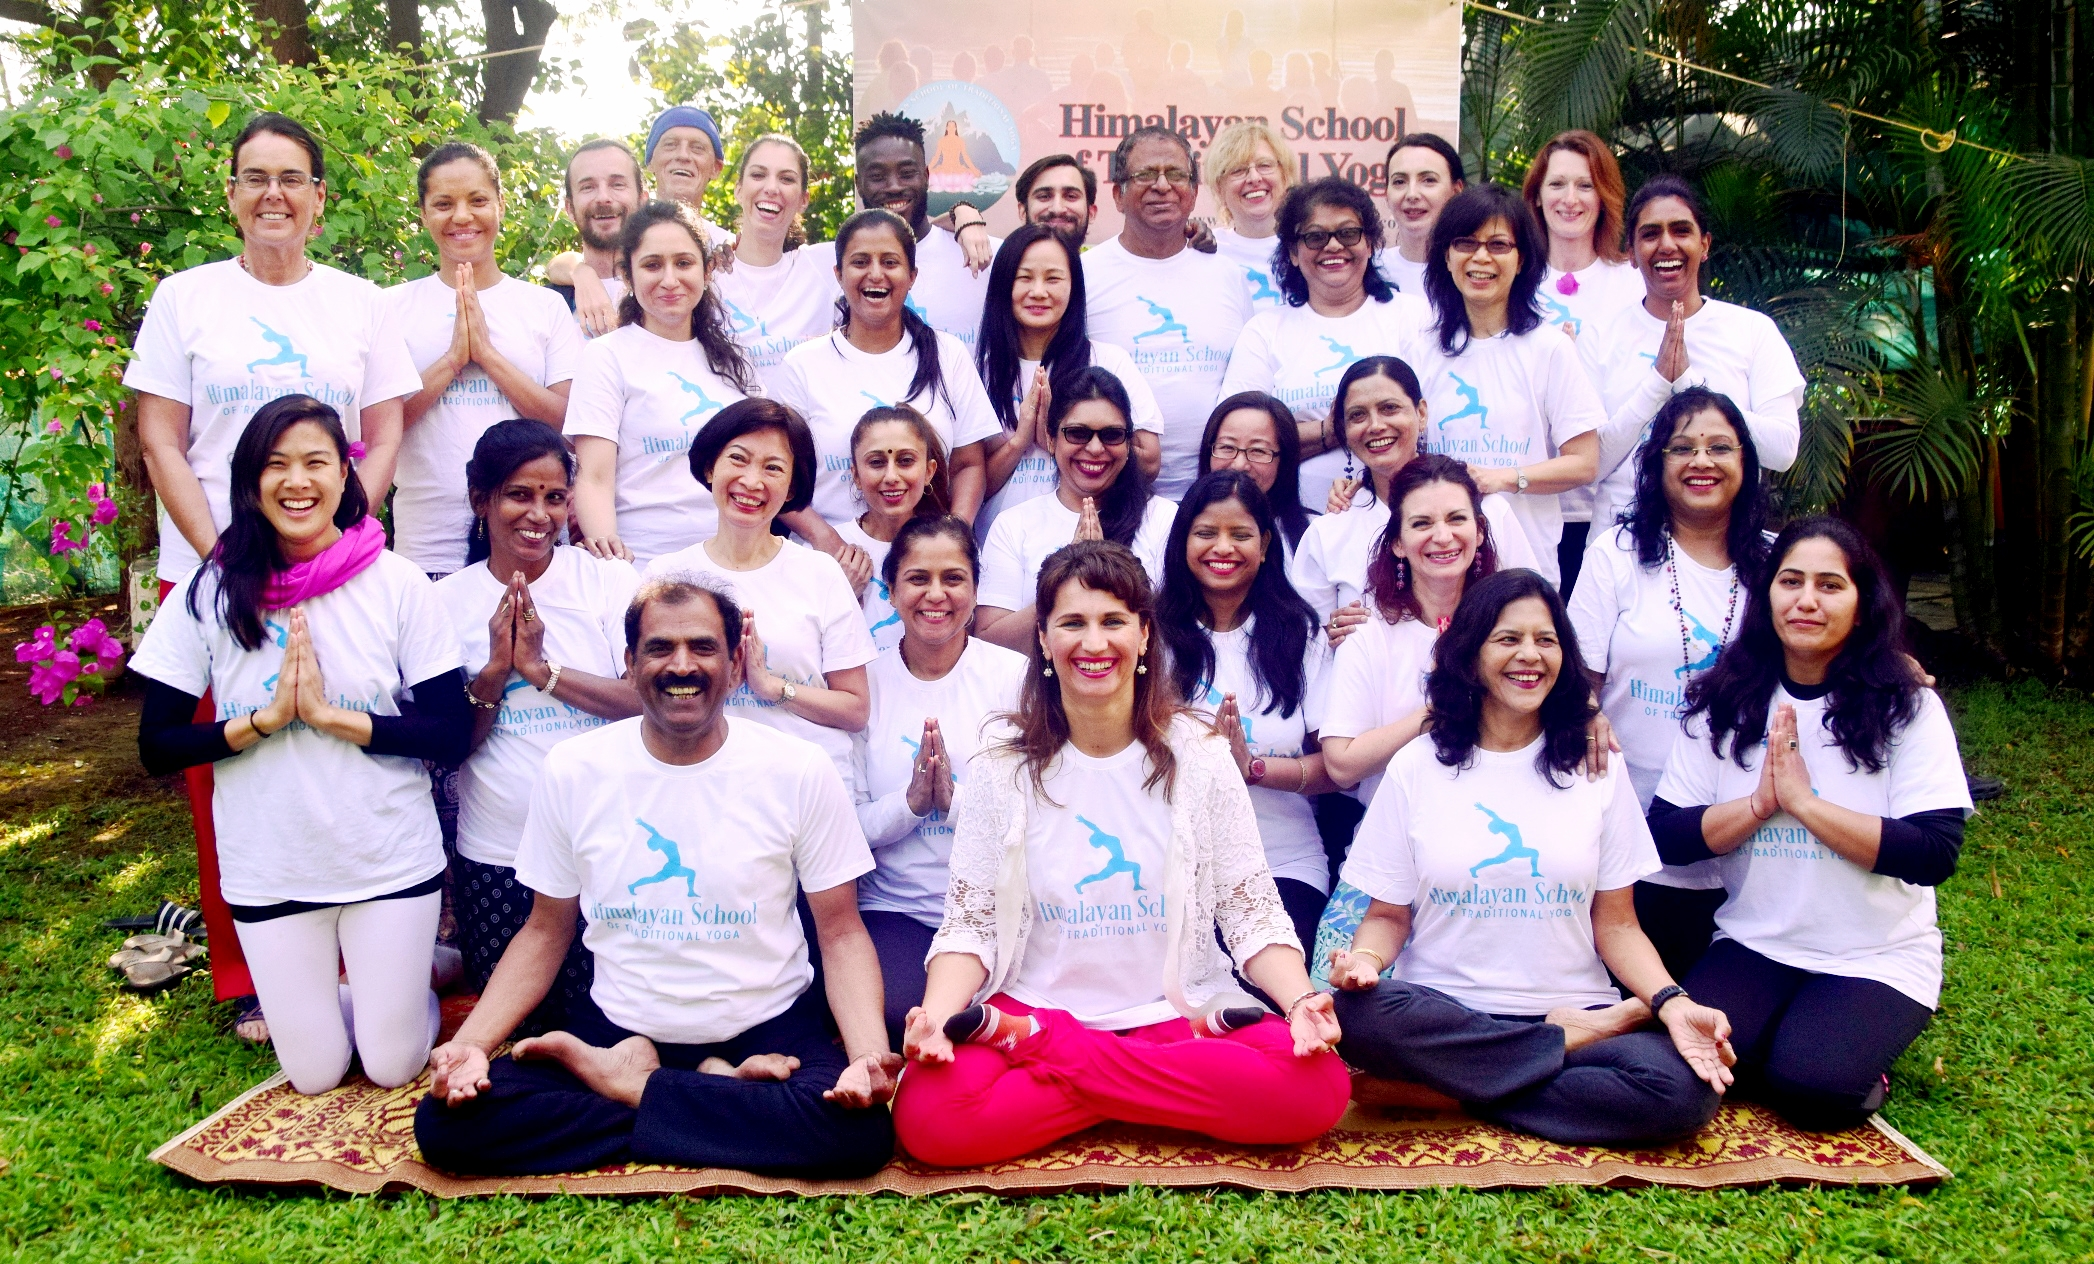 SMILES AFTER THE FIRST HIMALAYAN SCHOOL OF TRADITIONAL YOGA TEACHER TRAINING COURSE IN GANESHPURI INDIA IN JANUARY 2018.